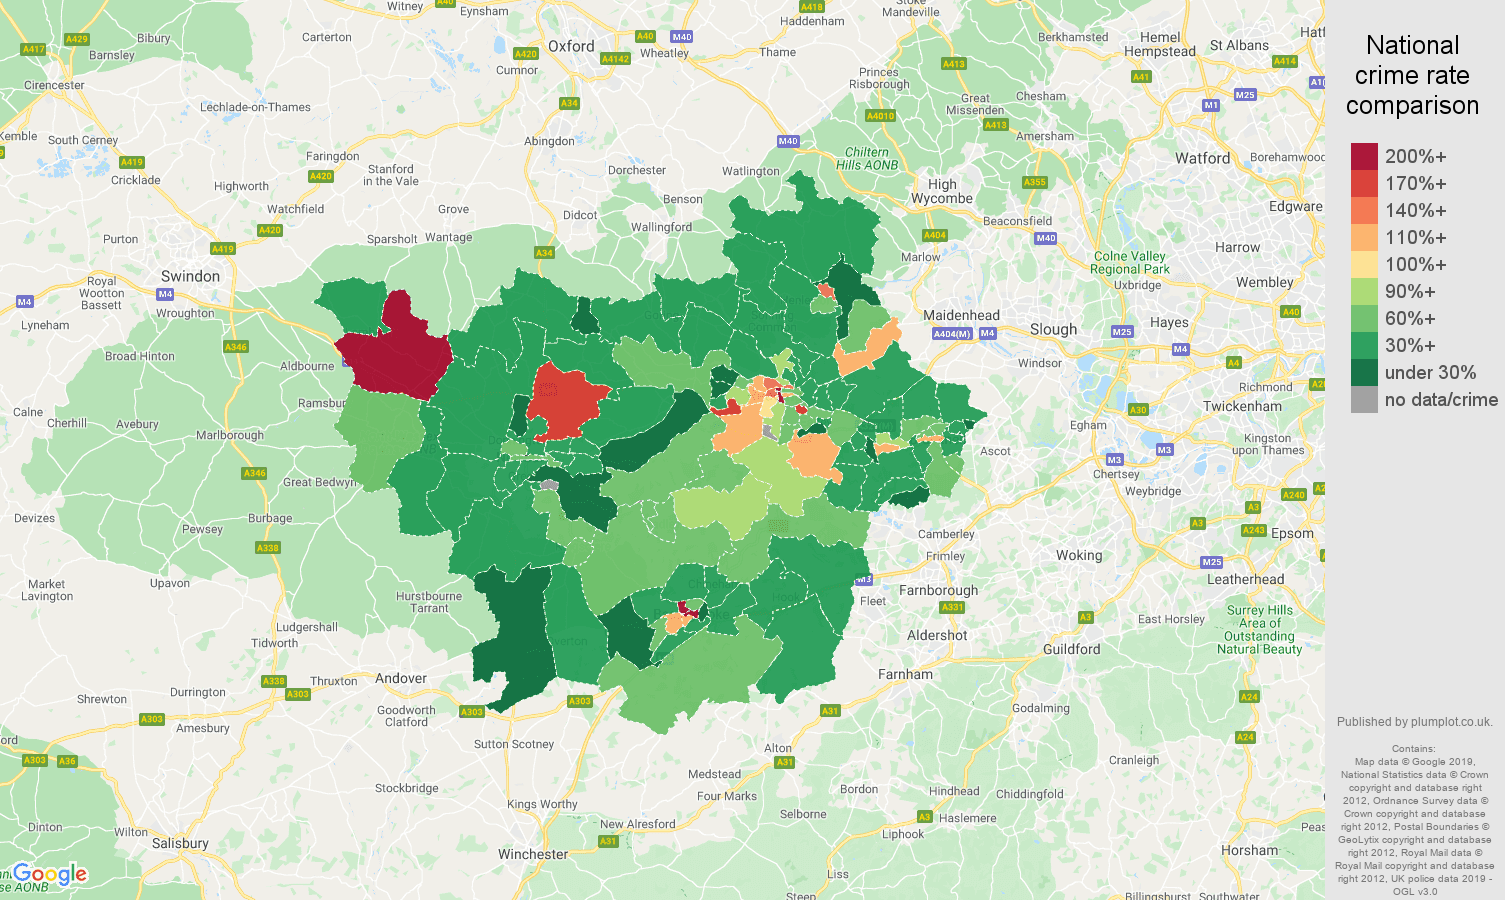 Reading other theft crime rate comparison map